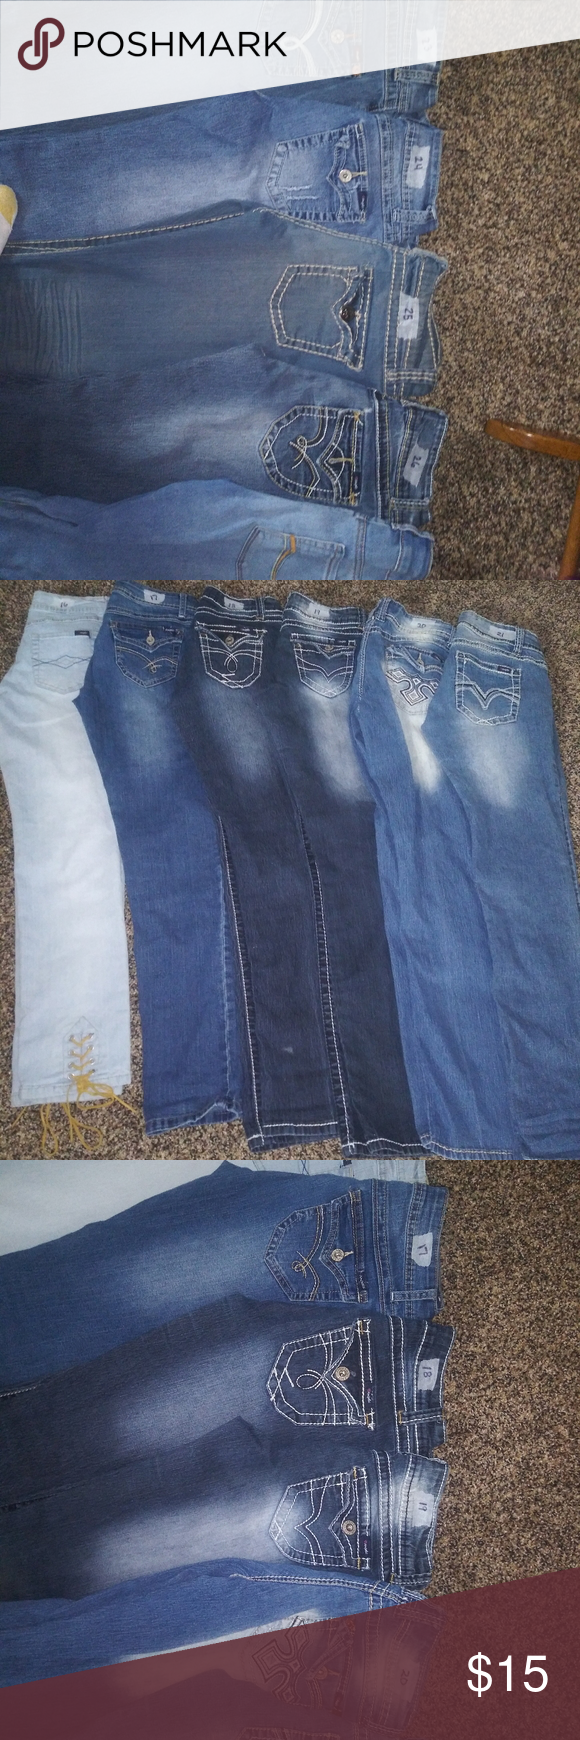 Blue jeans Mix of brands $15 a pair Angels1 size 9 Angels 2 size 9 Maurices 3 size 9/10  Before 4 size 9/10 Daytrip 5 size 29 long skinny Angel 6 size 11 $15.00 a piece 7 Ana. Size 8 8 Levi's size 7m 9 angels size 11 10 no boundaries size 9 11 Earl Jean size 9 12 rue 21 7/8 long slim boot All angel jeans  16 -19 Size 7 20-21 Size 9 22 fantasy size 10 23 angels size 10 24 angels size 7 25 v.i.p. 9/10 26 angels size 9 27 So. Sized 7 All $15 a piece Jeans